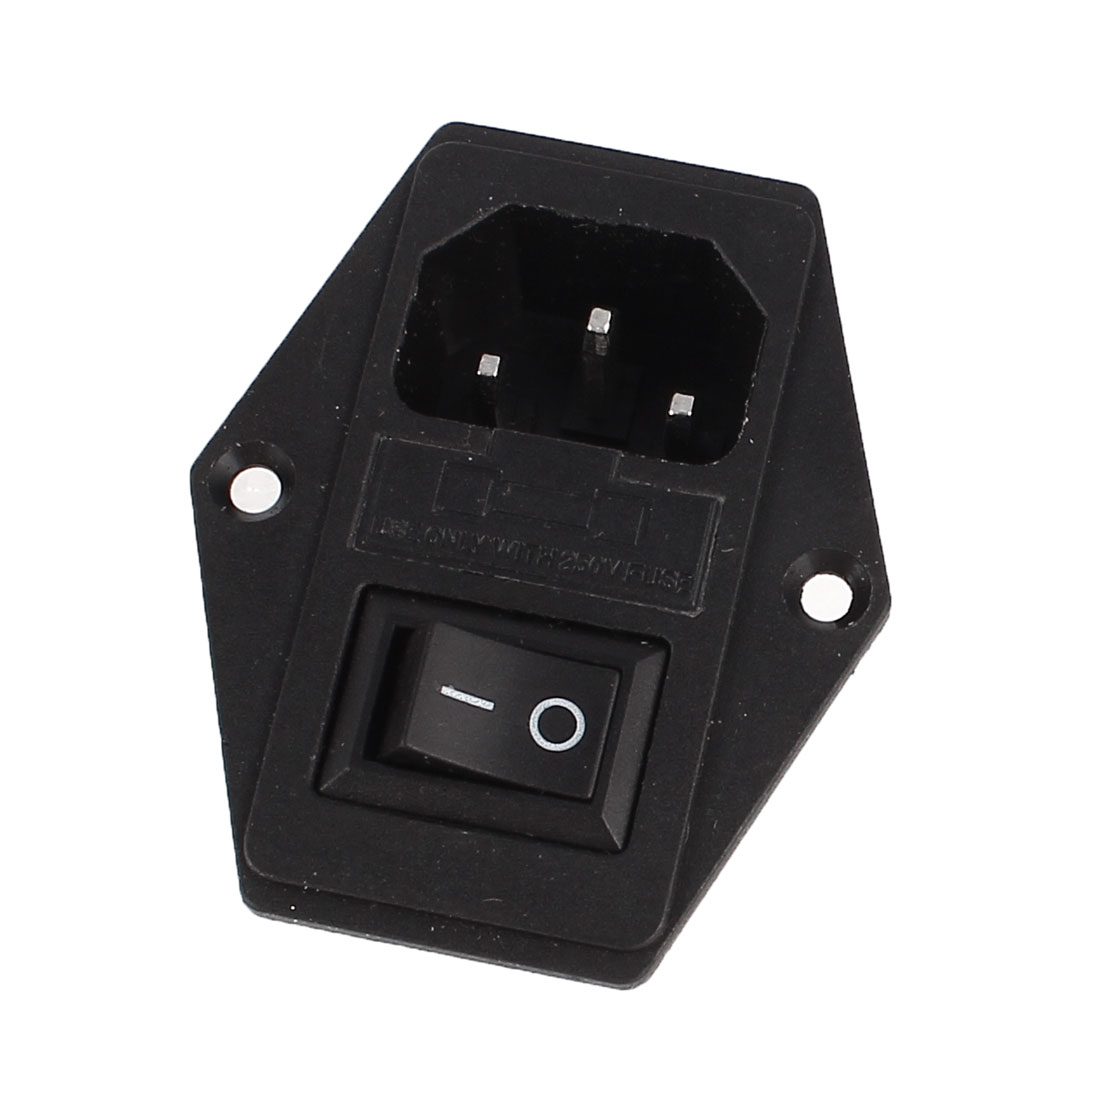 SPST ON/OFF Rocker Switch 250V 10A w Fuse Holder w IEC320 C14 Power Inlet